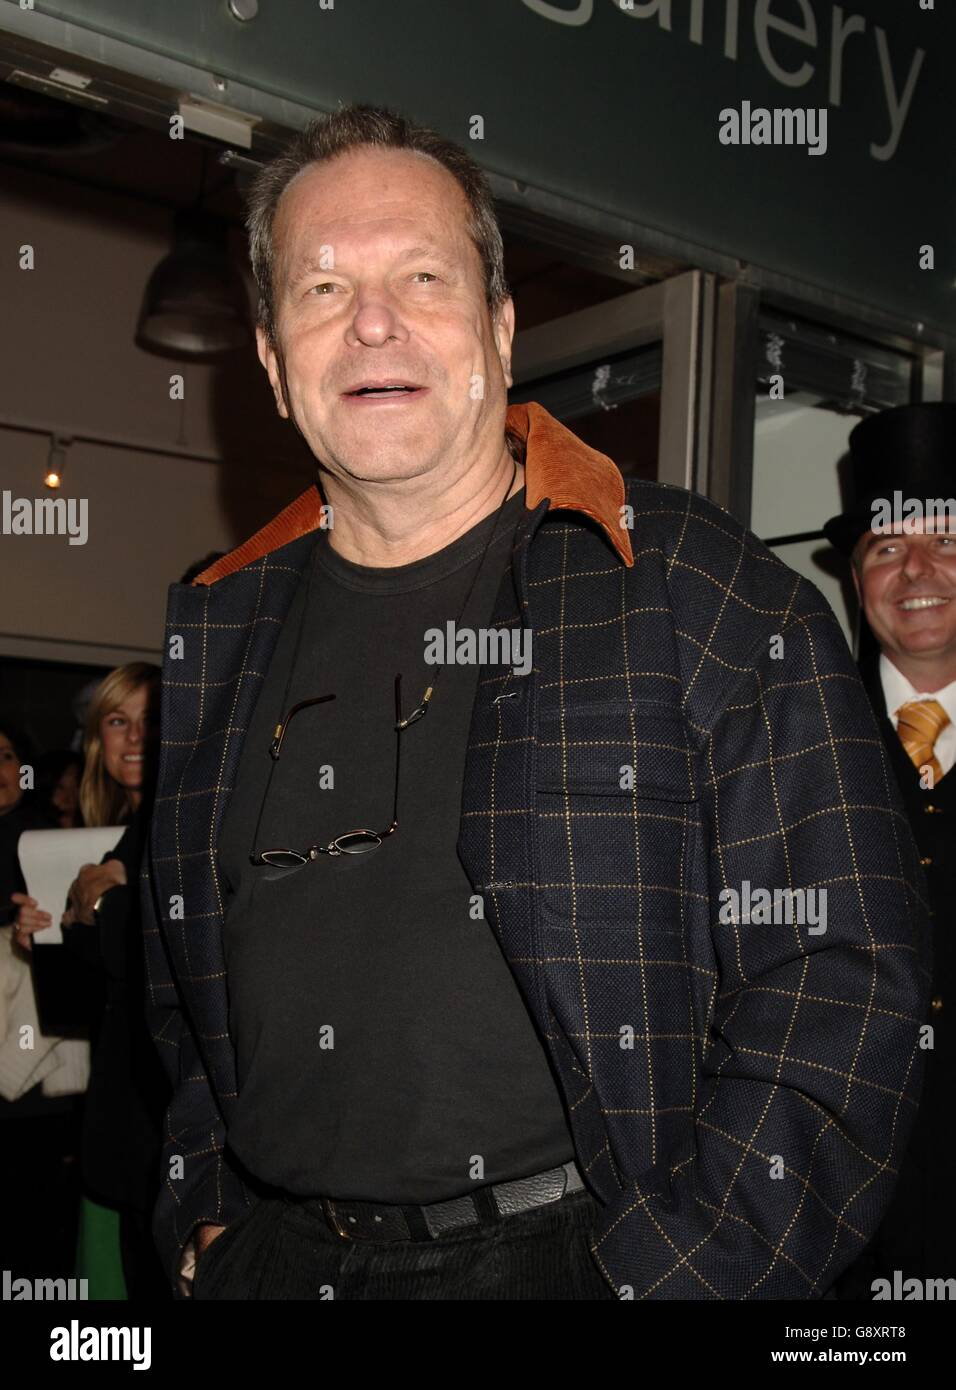 'Andy Gotts: Degrees' Preview - Getty Images Gallery - Stock Image